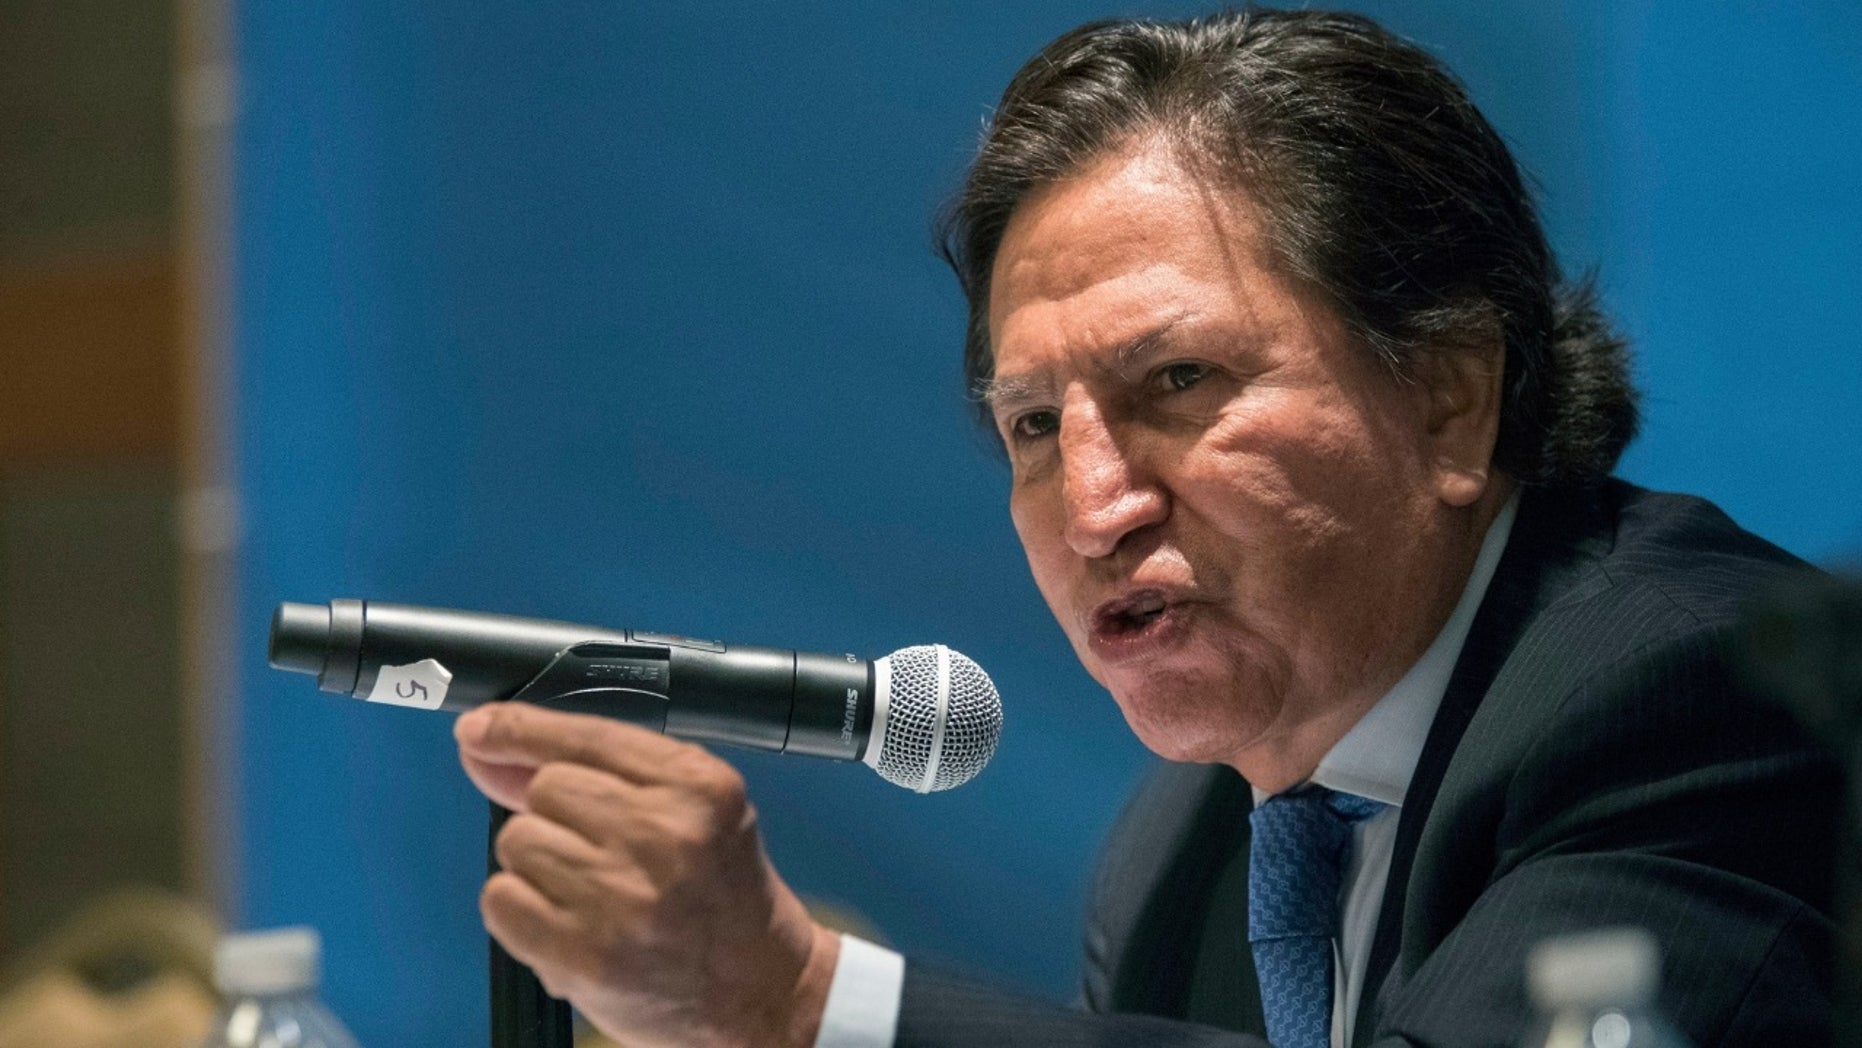 Former Peruvian President Alejandro Toledo, who is wanted in his native country in connection with Latin America's biggest graft scandal, was arrested in California on suspicion of public intoxication and spent the night in jail before being released Monday, authorities said.